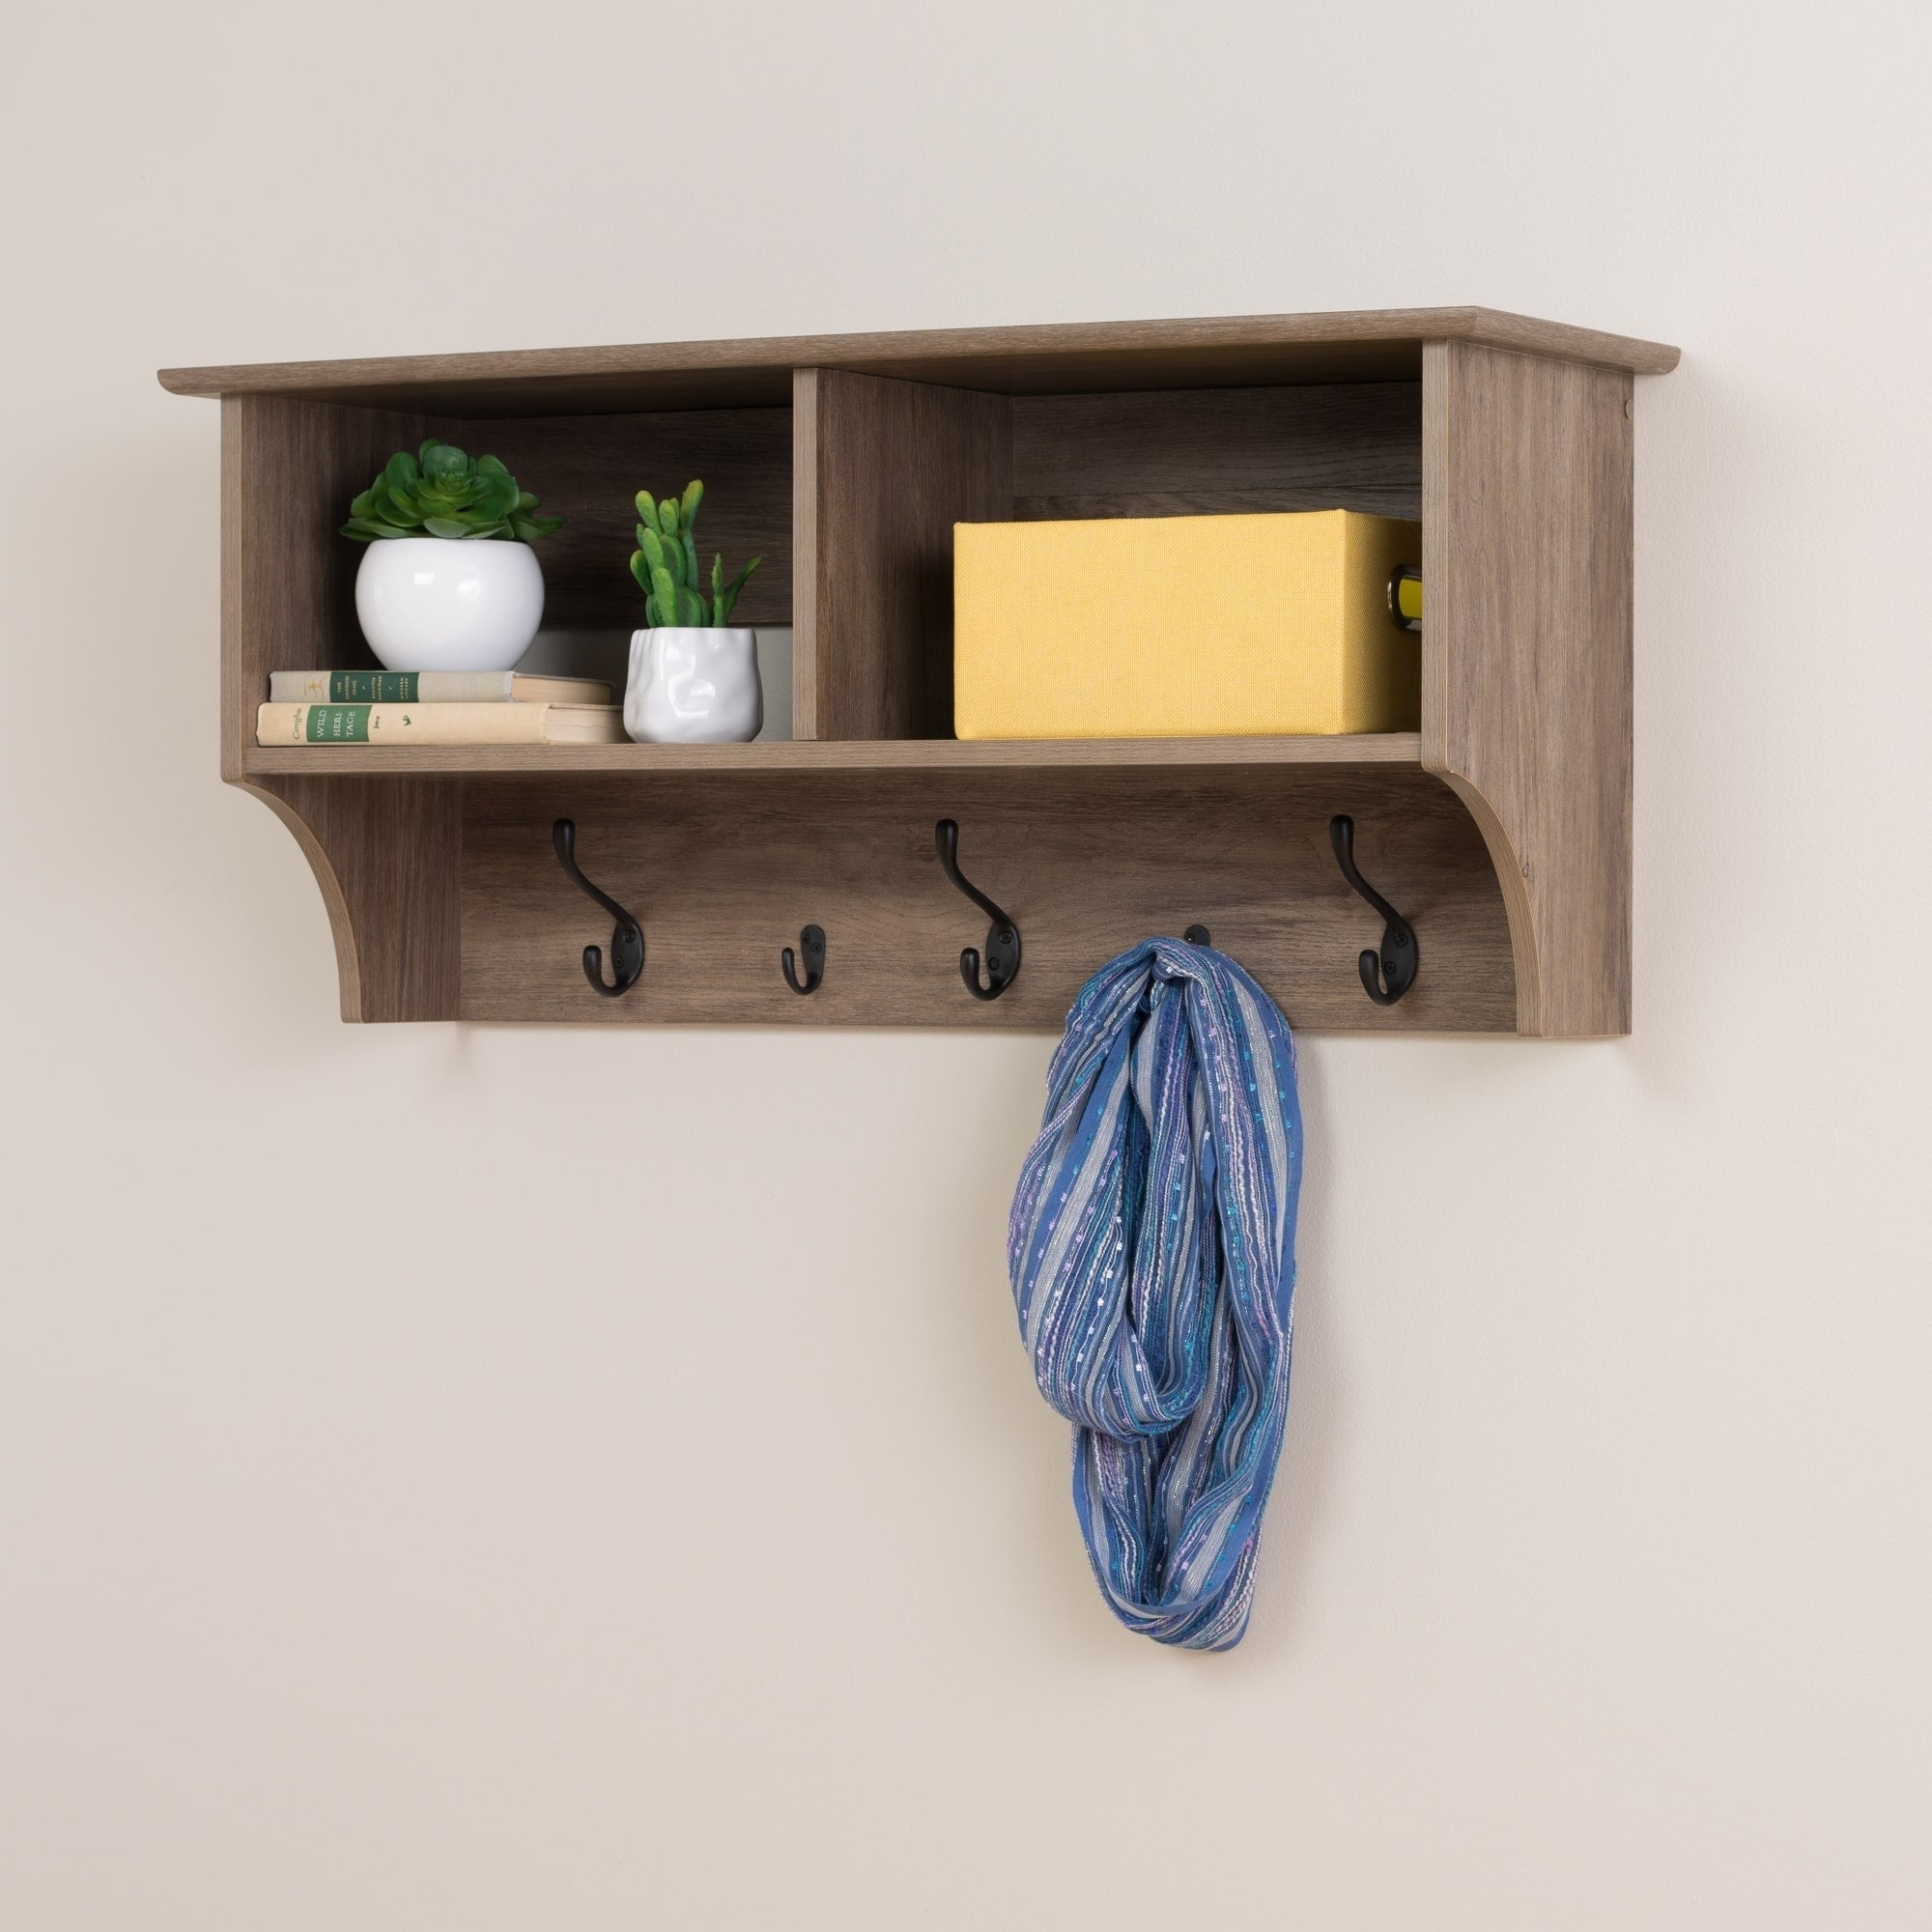 prepac drifted grey wood inch wide floating entryway shelf with bench enclosed wall shelves art small kitchen rack design for living room original bookcase brackets industrial